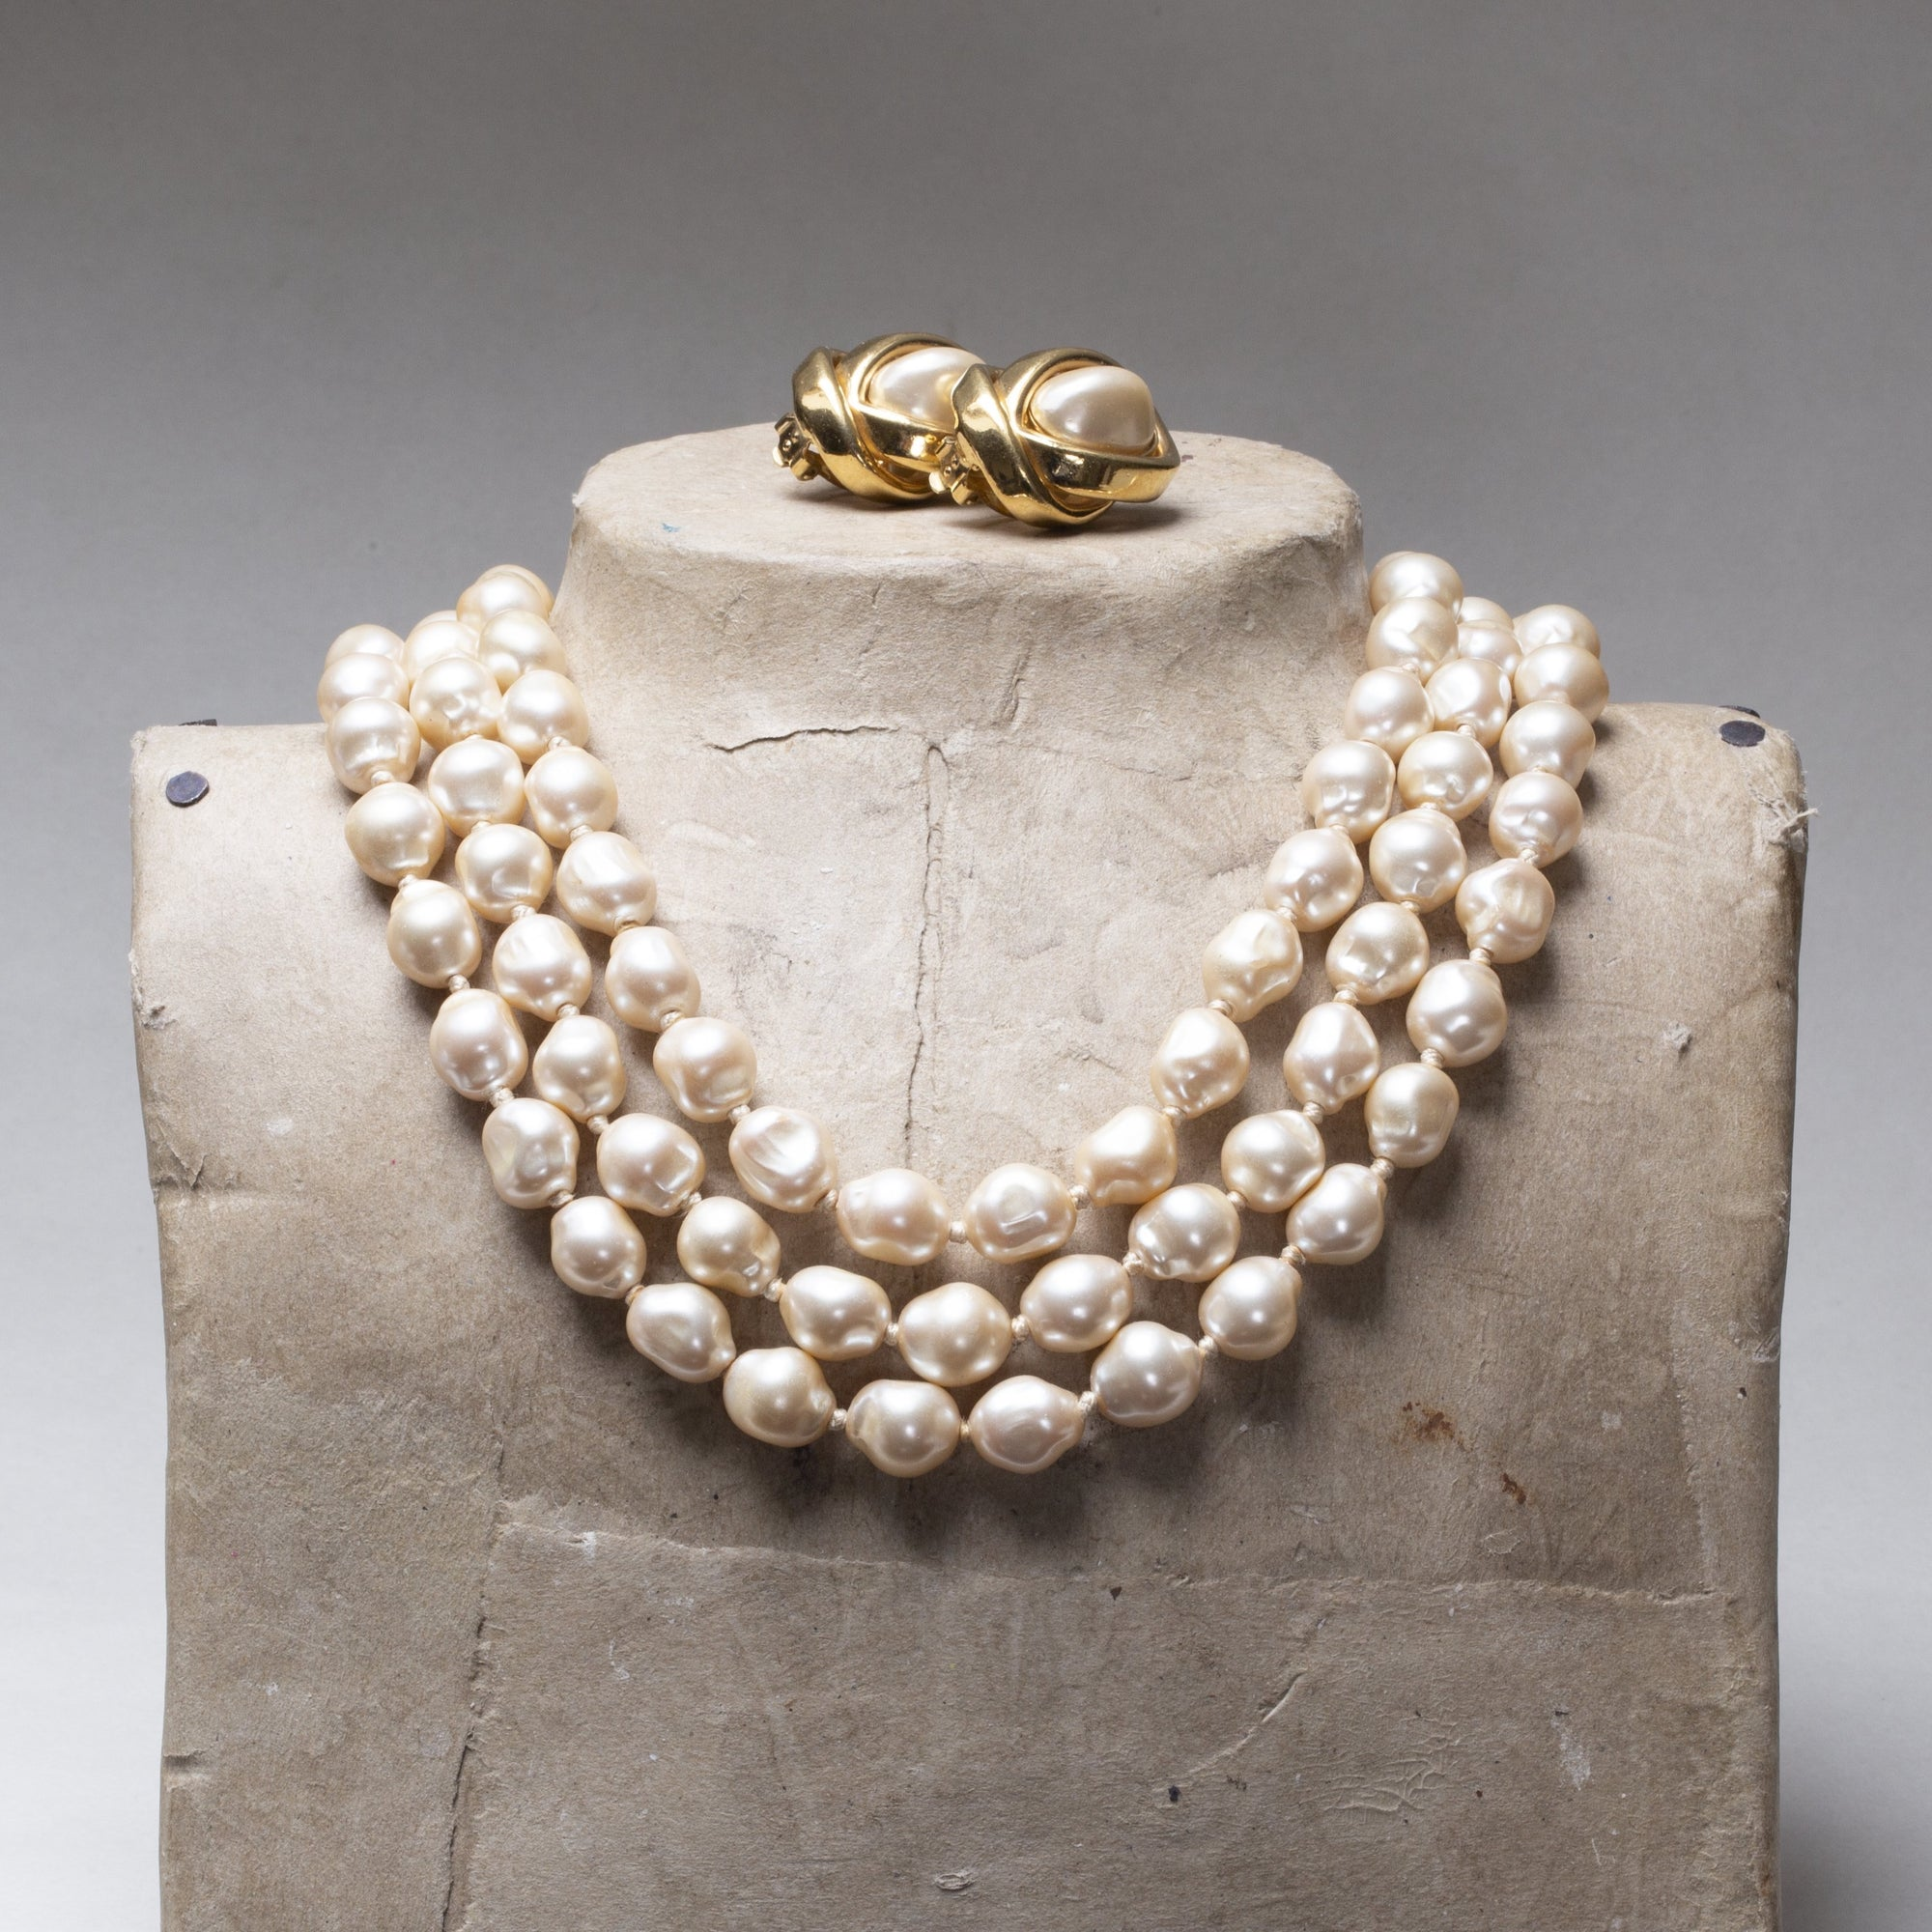 Vintage Pearl Necklace with Gold Clasp and Earrings